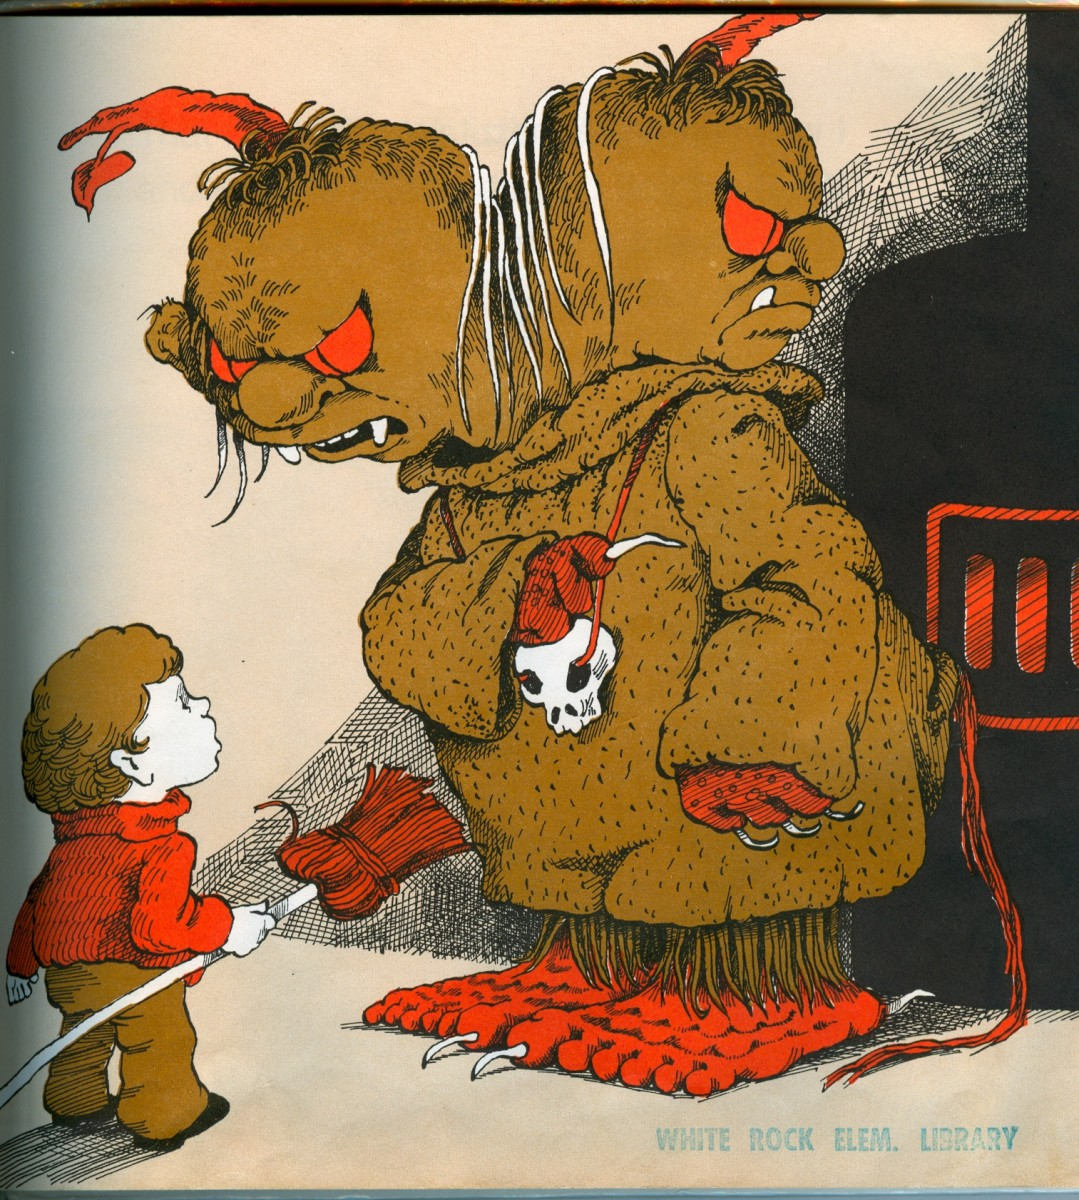 The Whatzit from Dick Gackenbach's classic book is the story of a monster bully and Harry, a boy who faces his fears...with the kitchen broom!